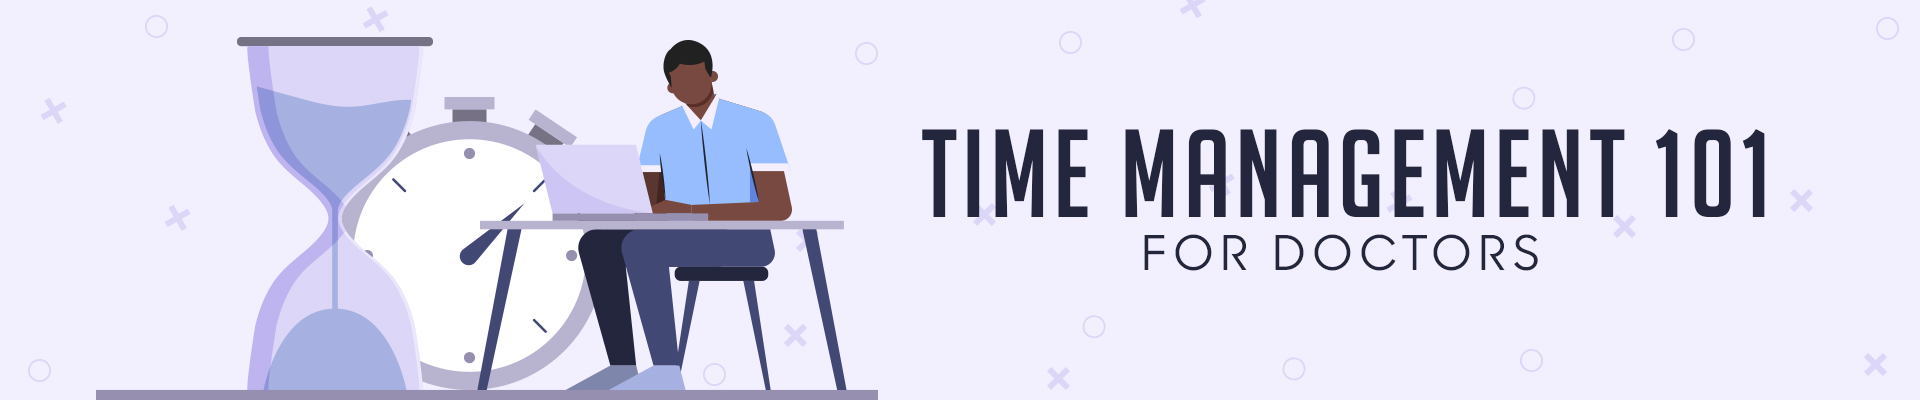 Time Management 101 For Doctors - 2021 Guide